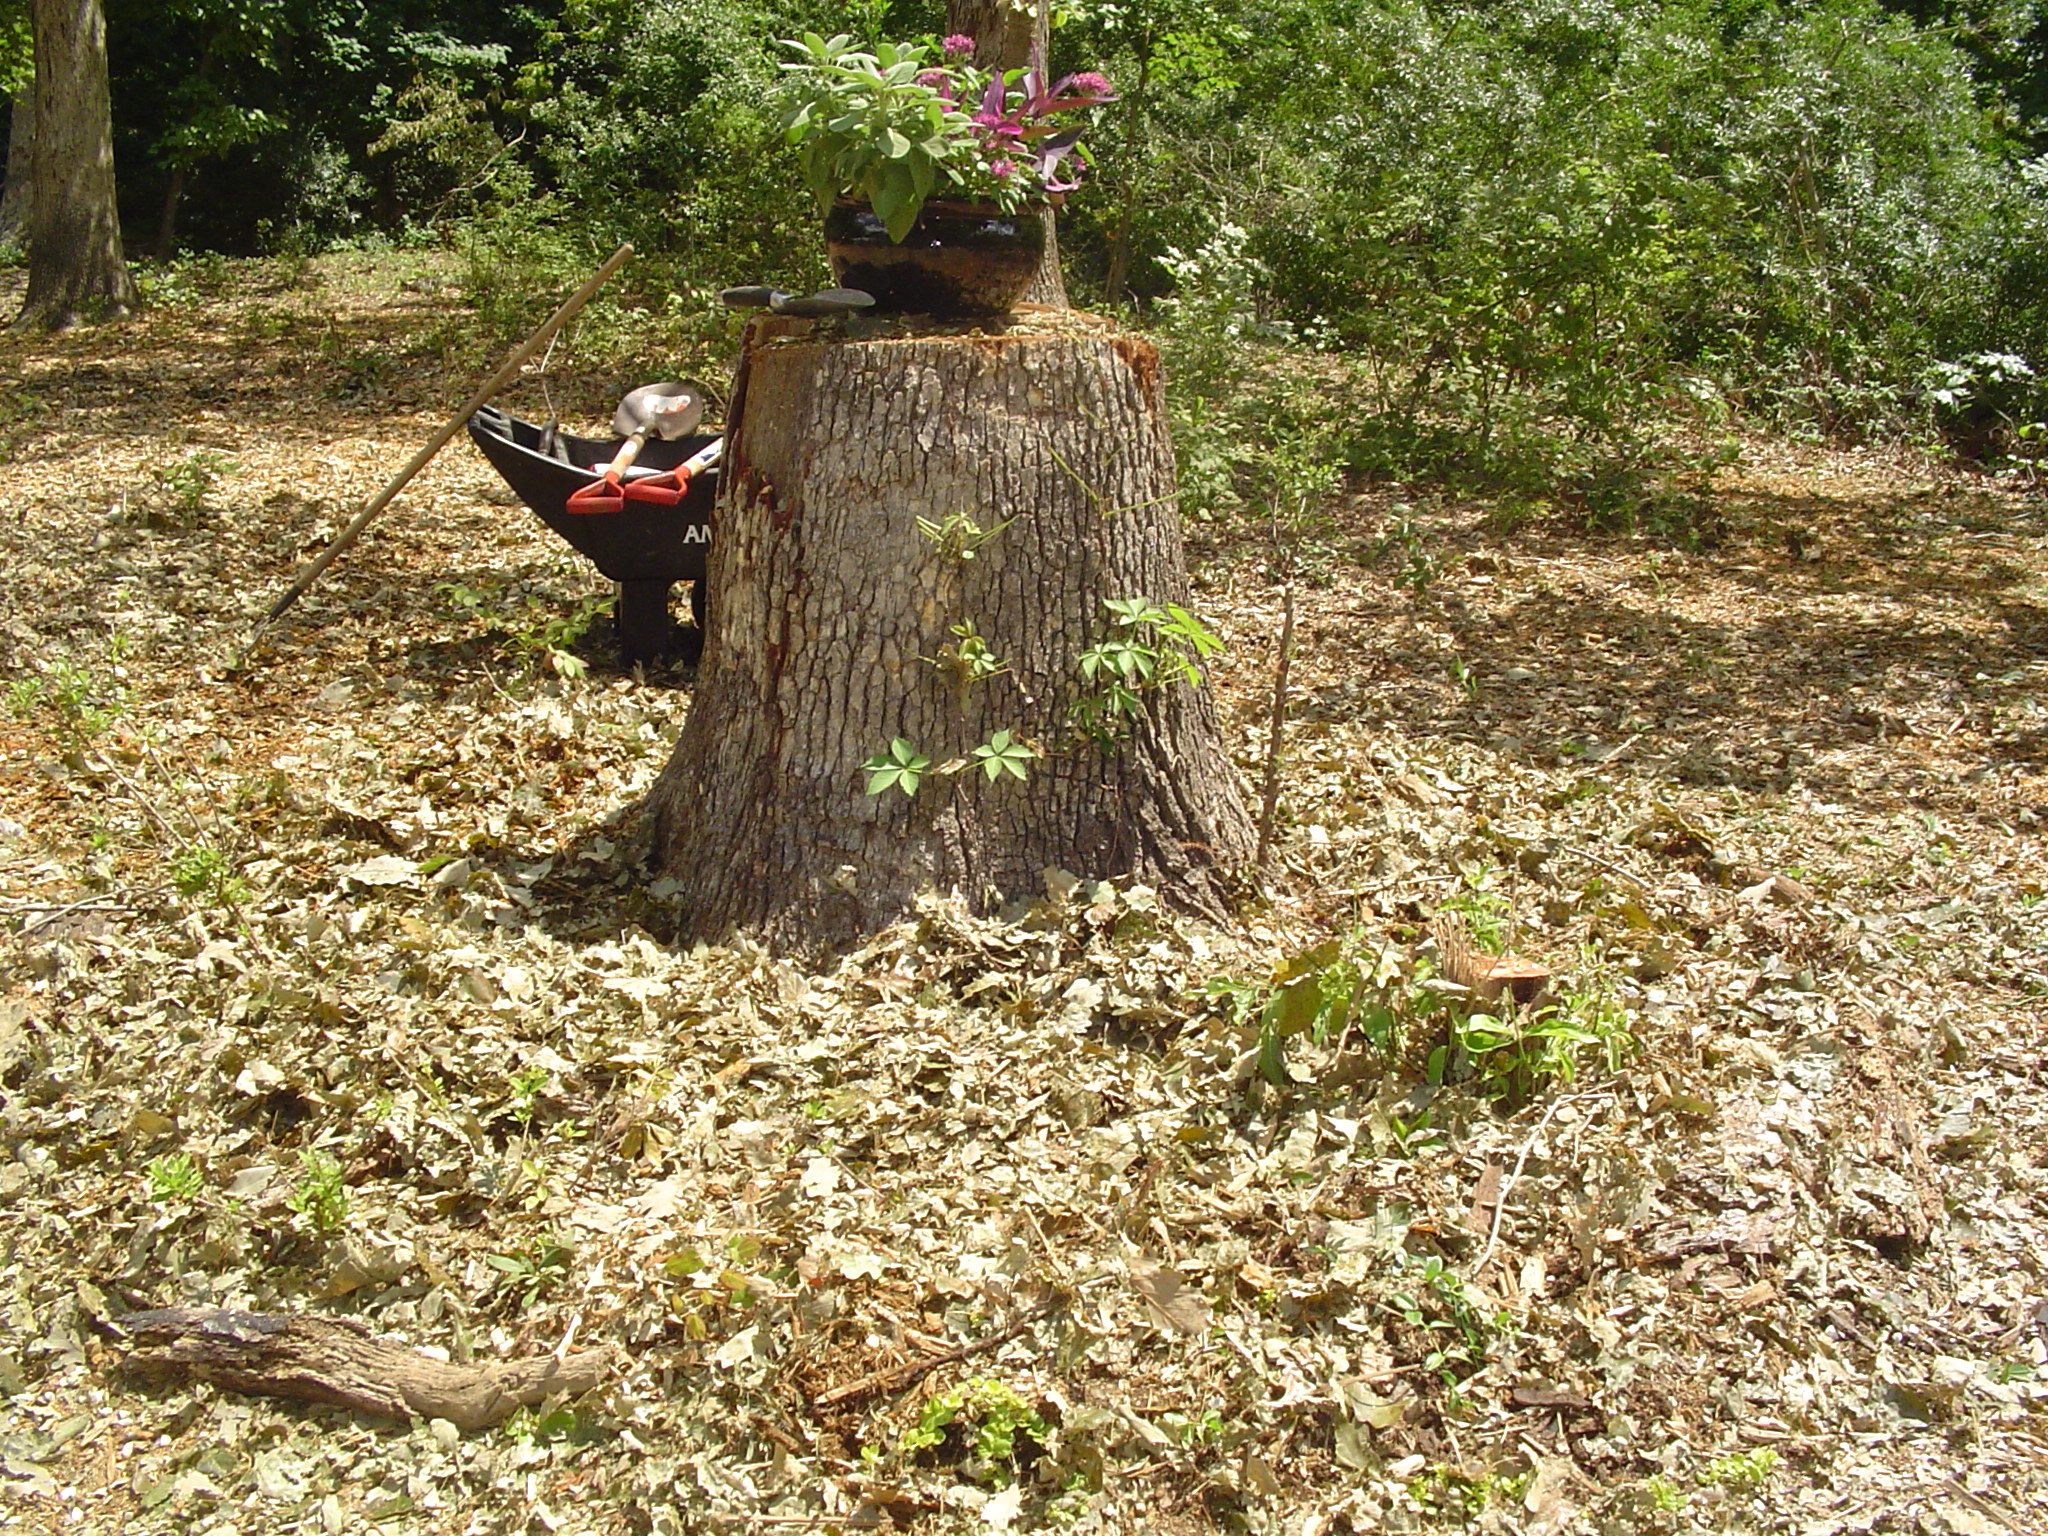 Chipped up wood and leaves spread over the foundation of wood will rot into good compost over time.